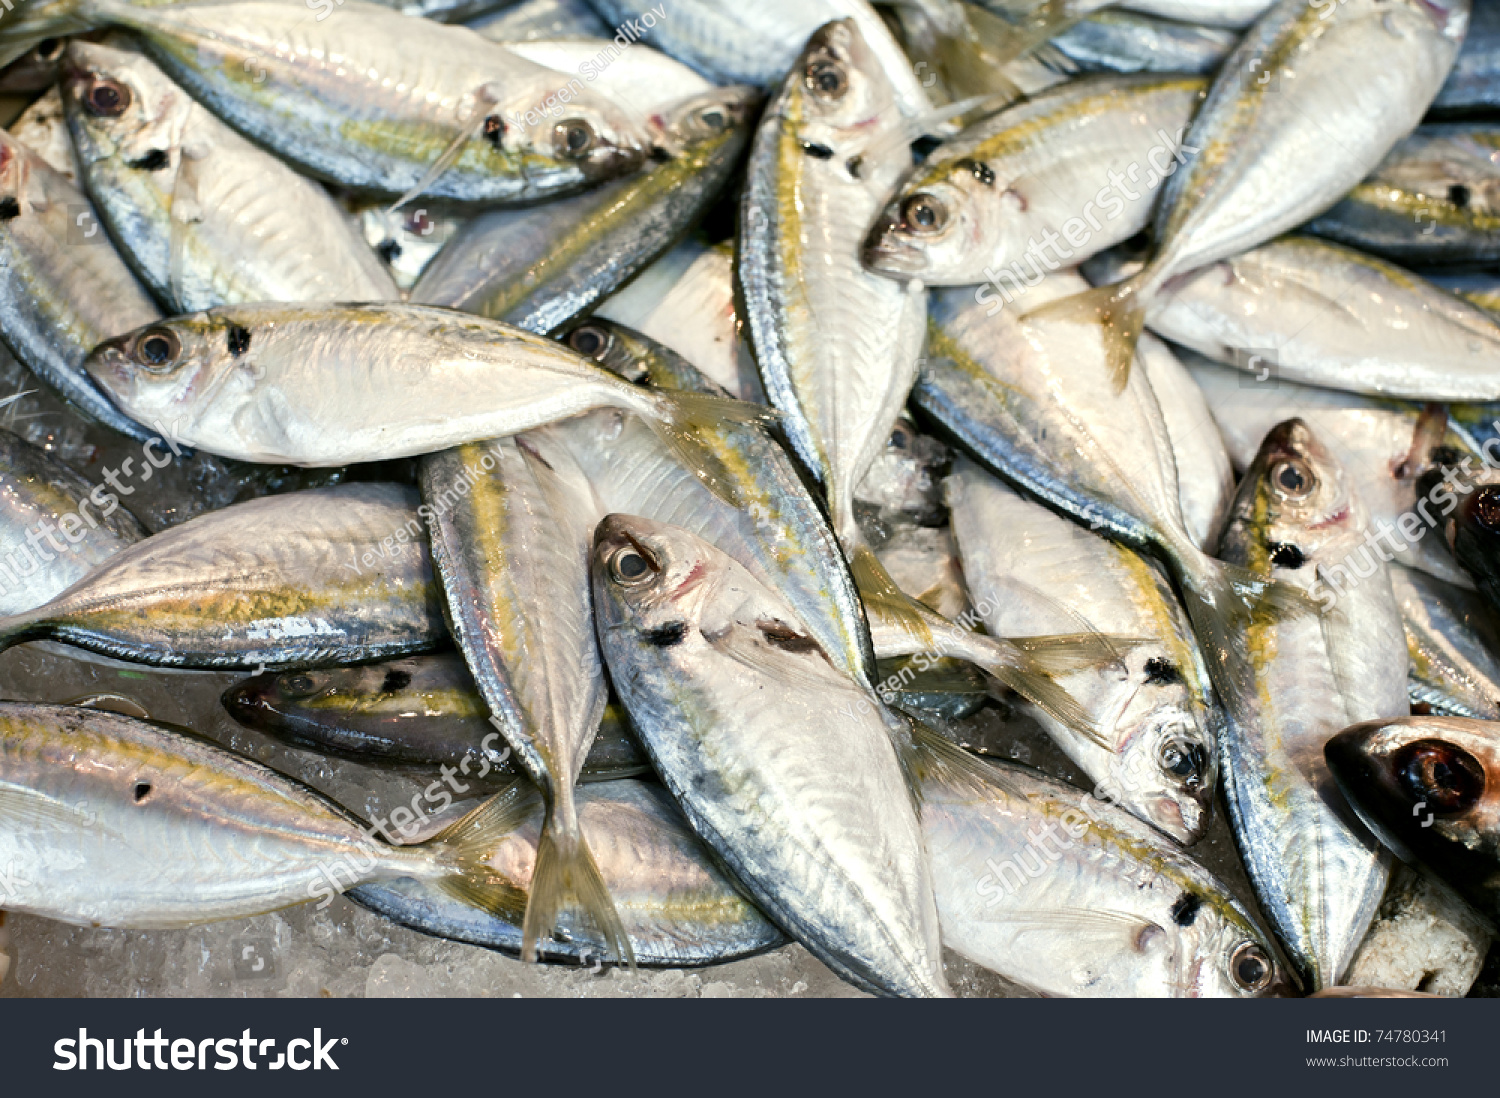 Lots of fish stock photo 74780341 shutterstock for Lot of fish